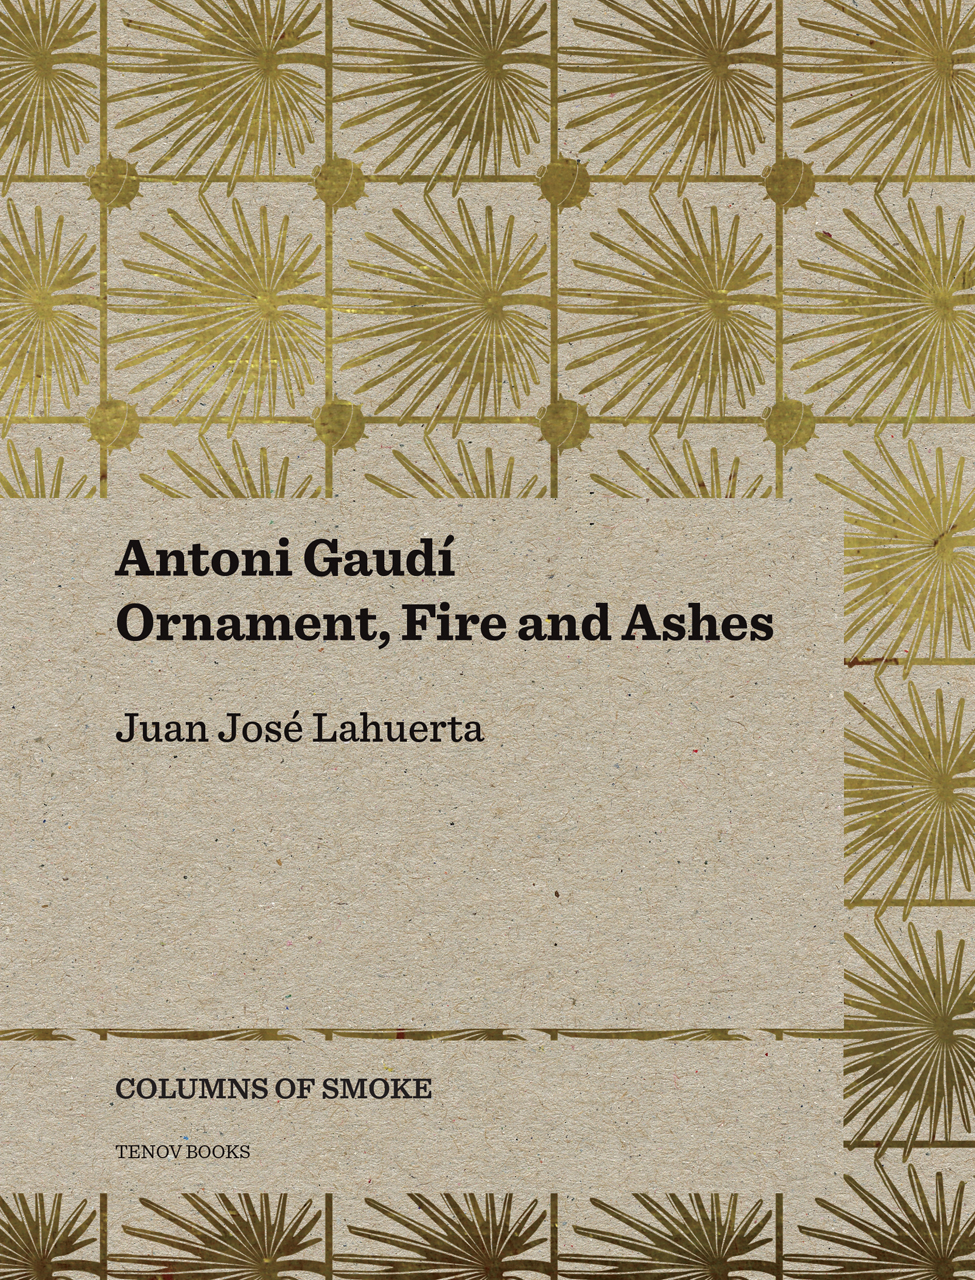 Antoni Gaudí: Ornament, Fire and Ashes